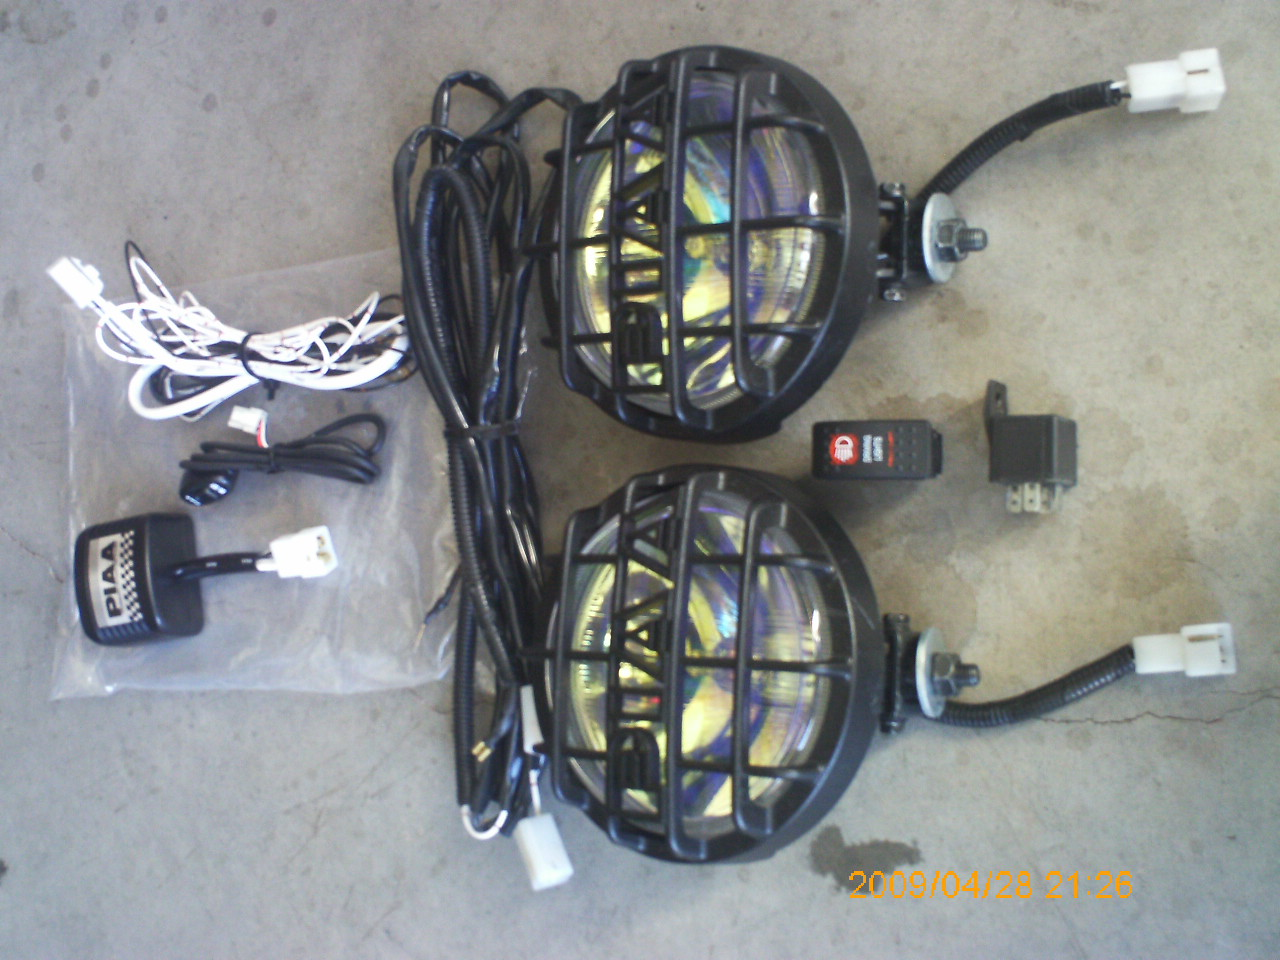 40609d1358641231 sale piaa 510 520 off road lights ptdc0008 nissan frontier forum view single post for sale piaa 510 piaa 520 wiring harness at alyssarenee.co